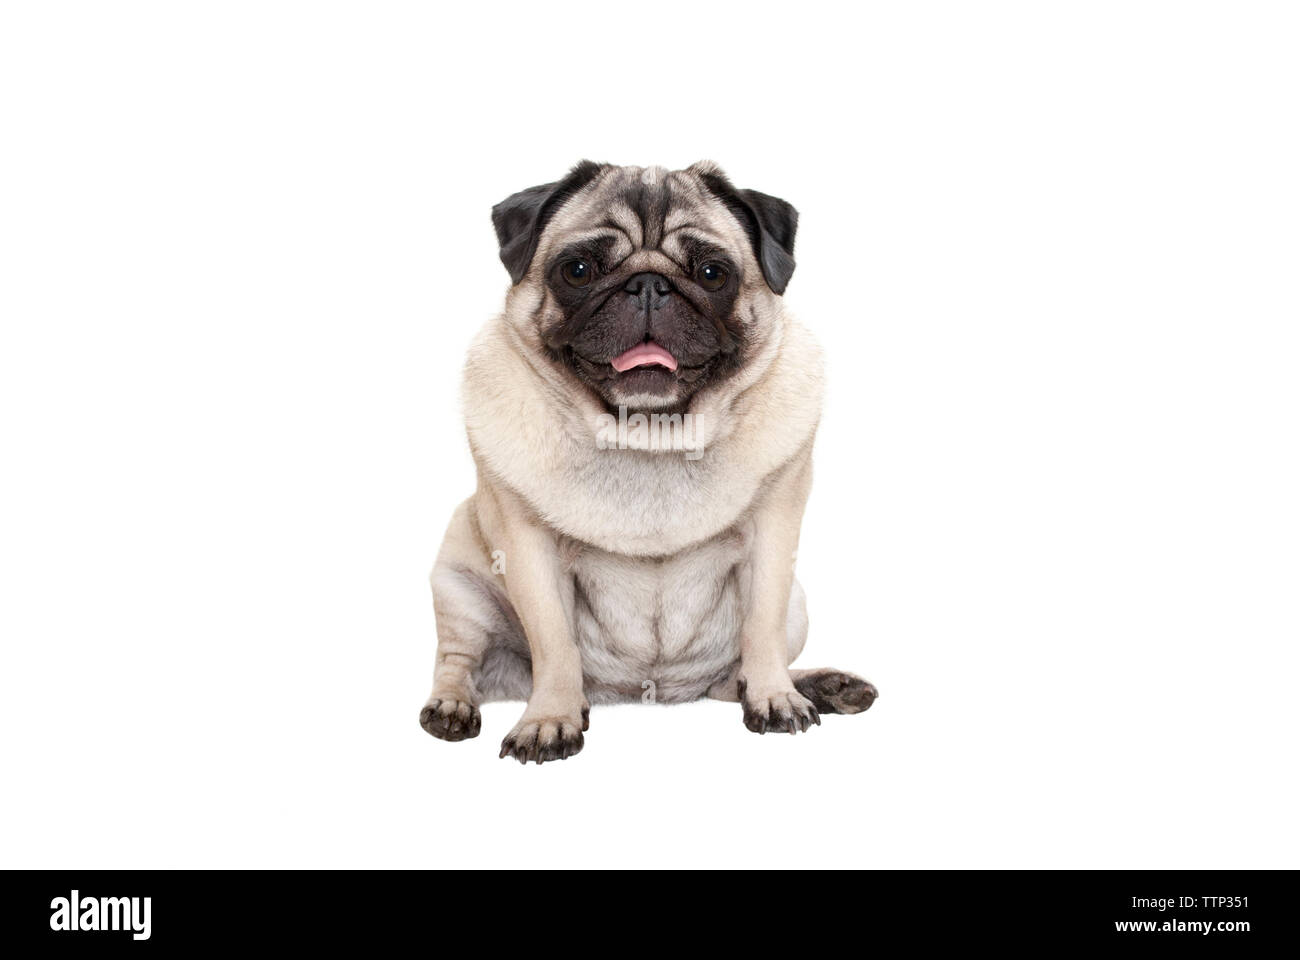 adorable cute smiling pug puppy dog sitting down with tongue out, isolated on white background Stock Photo